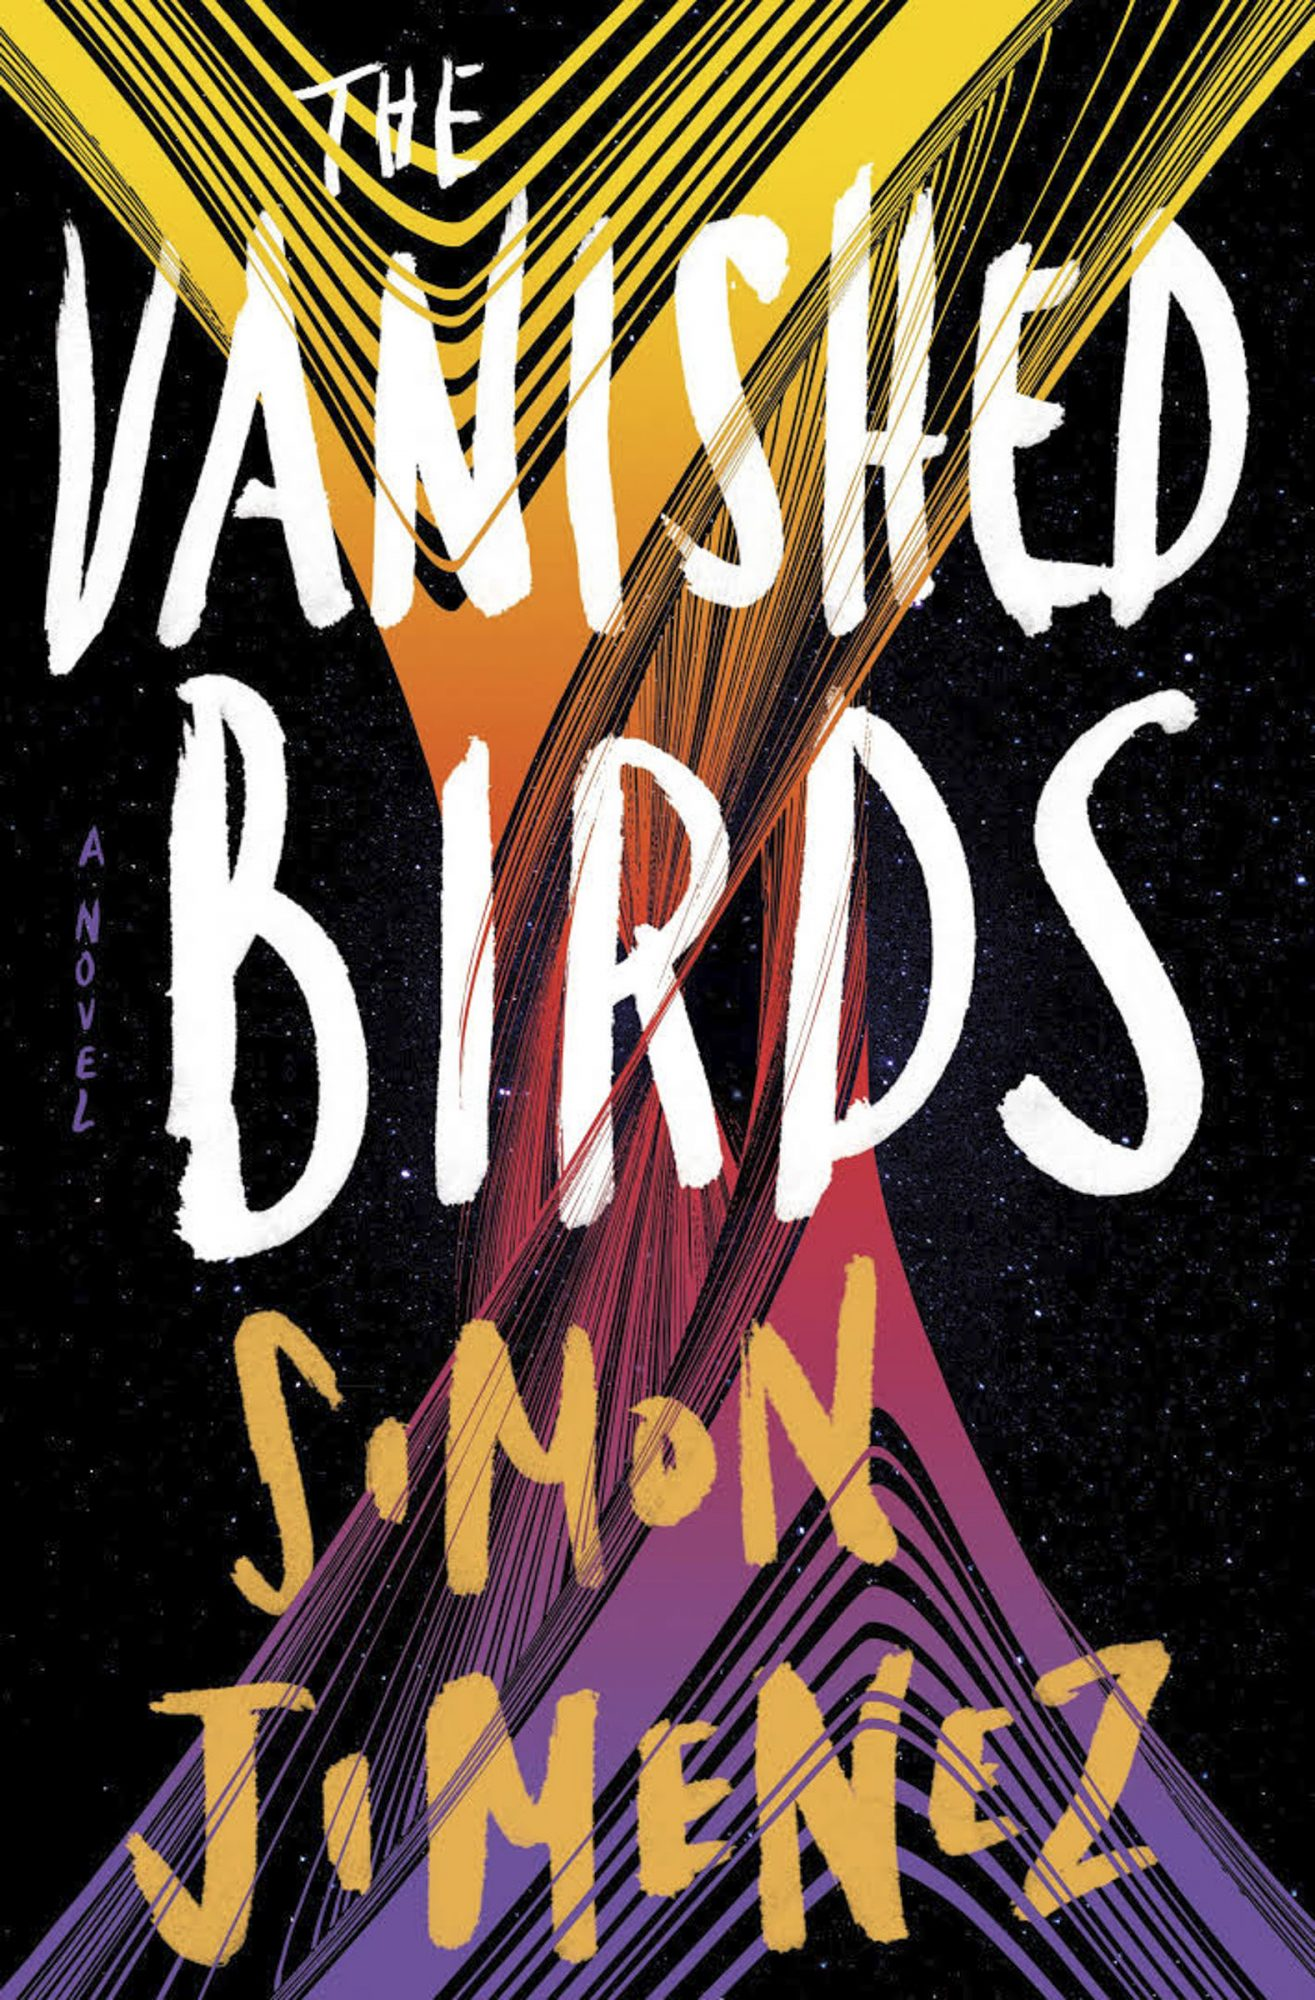 The Vanished Birds by Simon JimenezCR: Random House